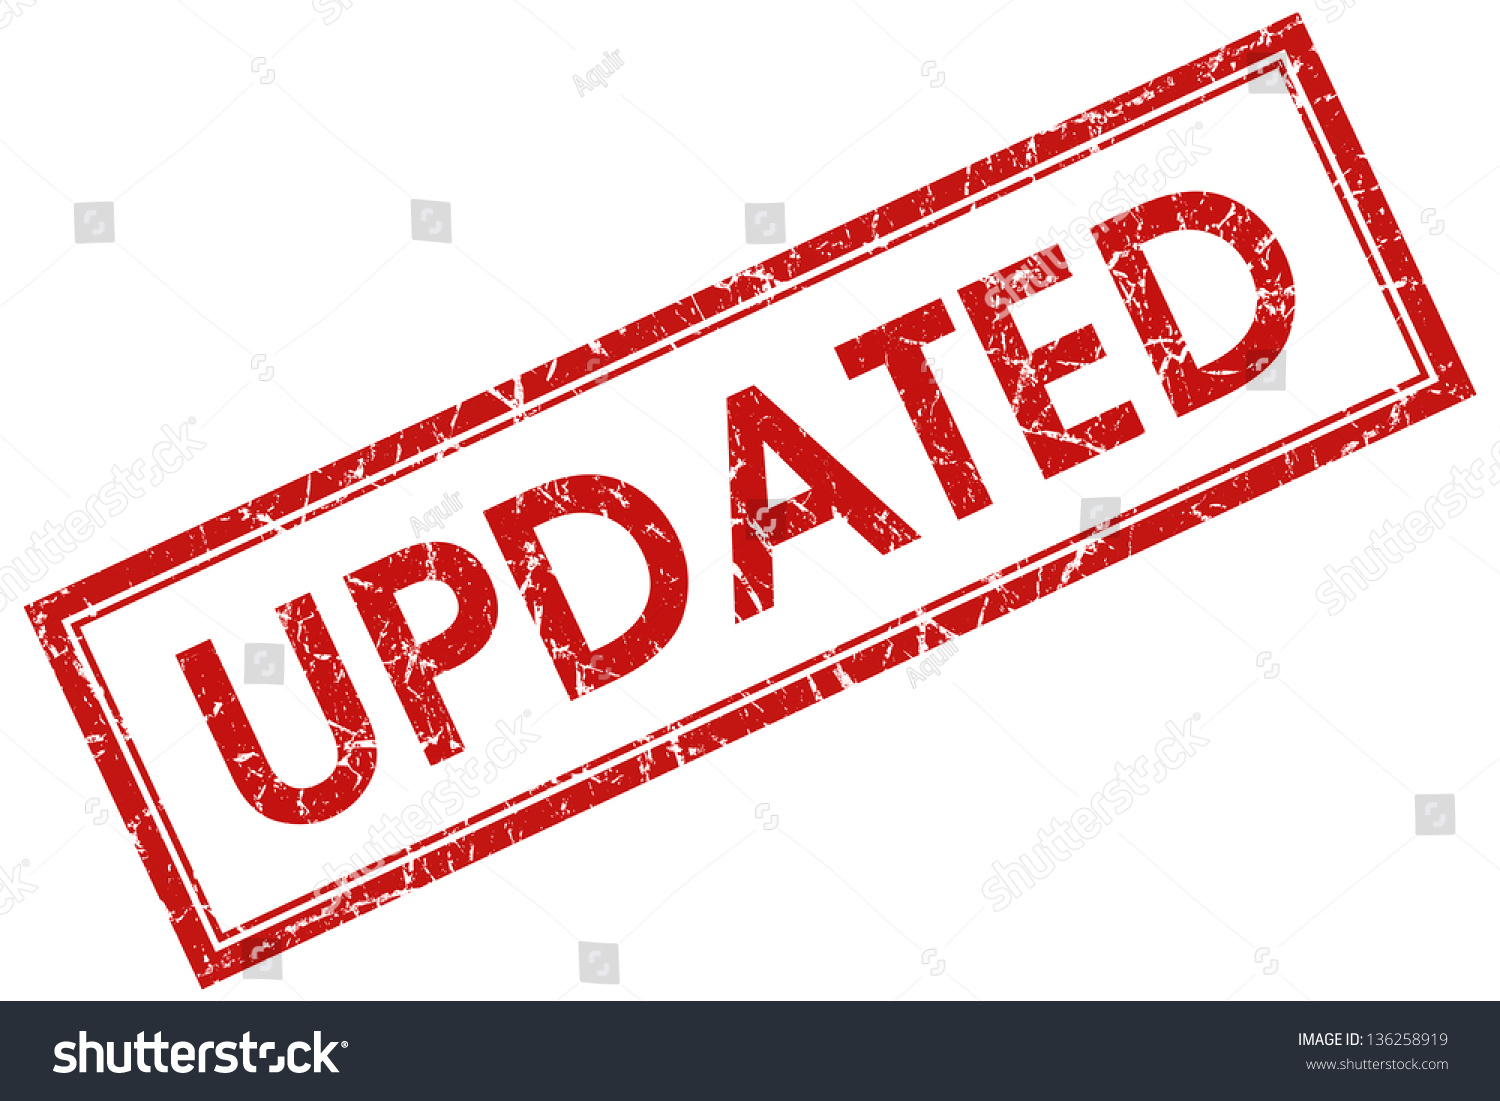 Http Www Shutterstock Com Pic 136258919 Stock Photo Updated Stamp Html